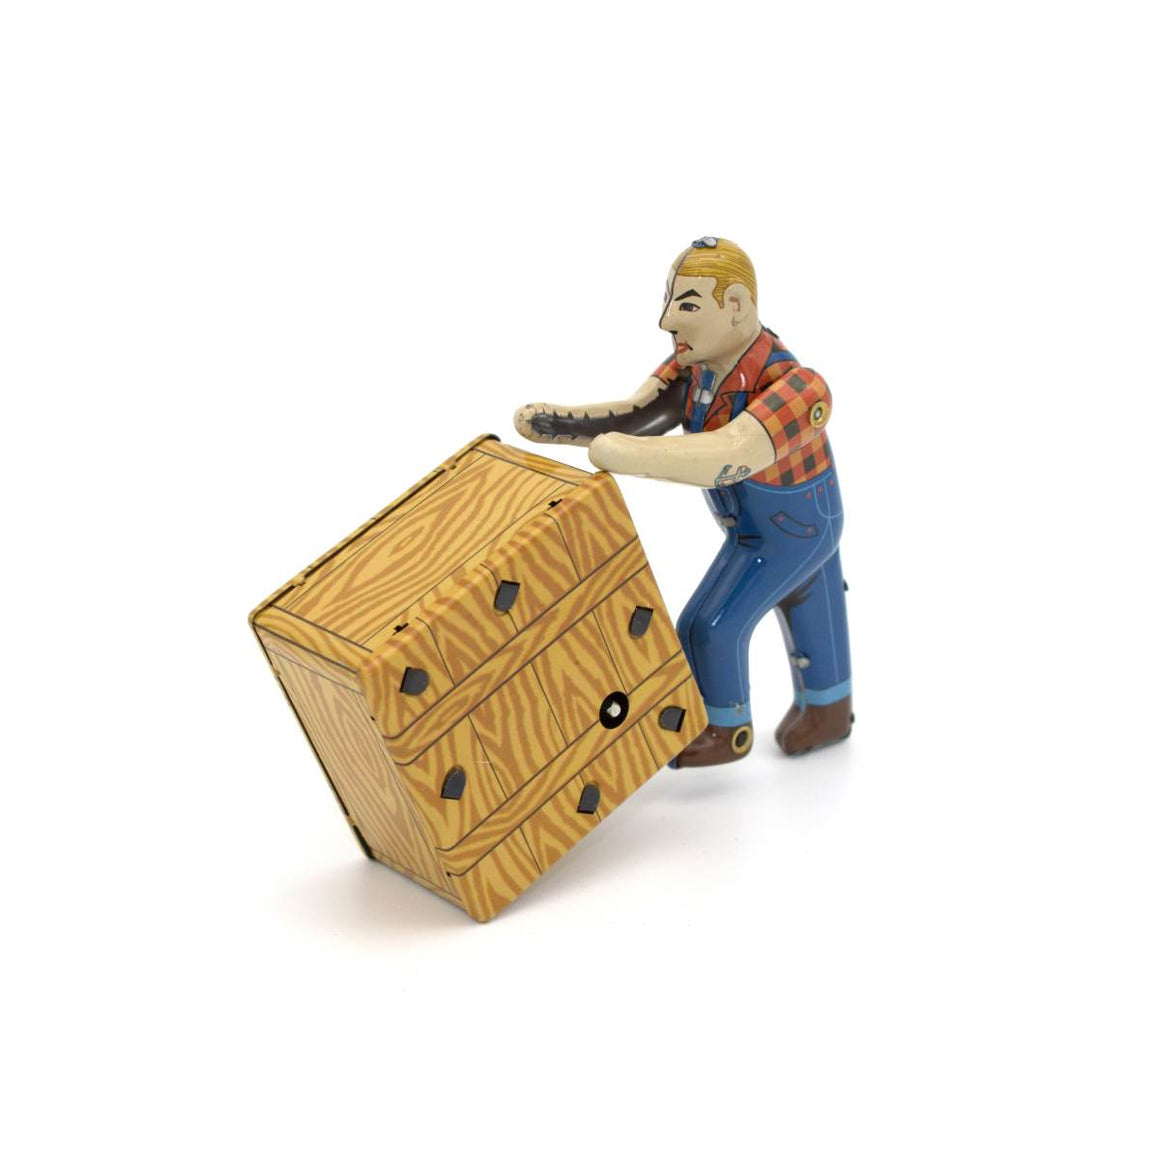 A wind up tin toy featuring a man in workman overalls, pushing a wood grain box